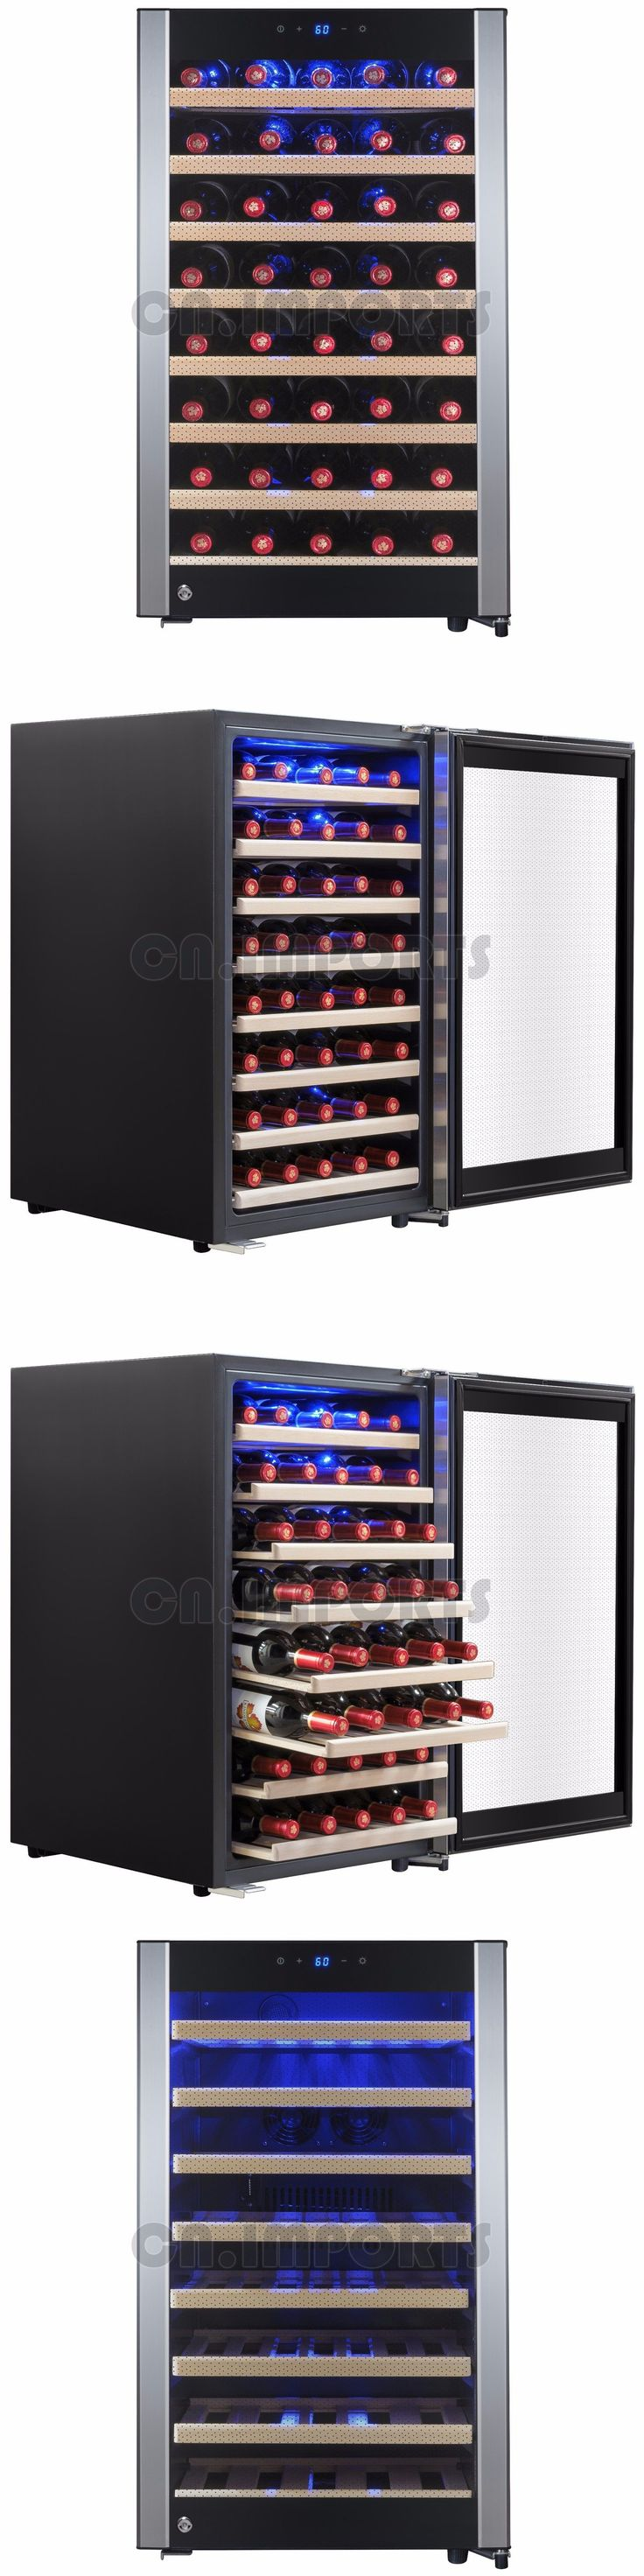 Wine Fridges and Cellars 177750: 52 Bottle Single Zone Freestanding Touch Control Compressor Wine Cooler Chiller -> BUY IT NOW ONLY: $519.99 on eBay!